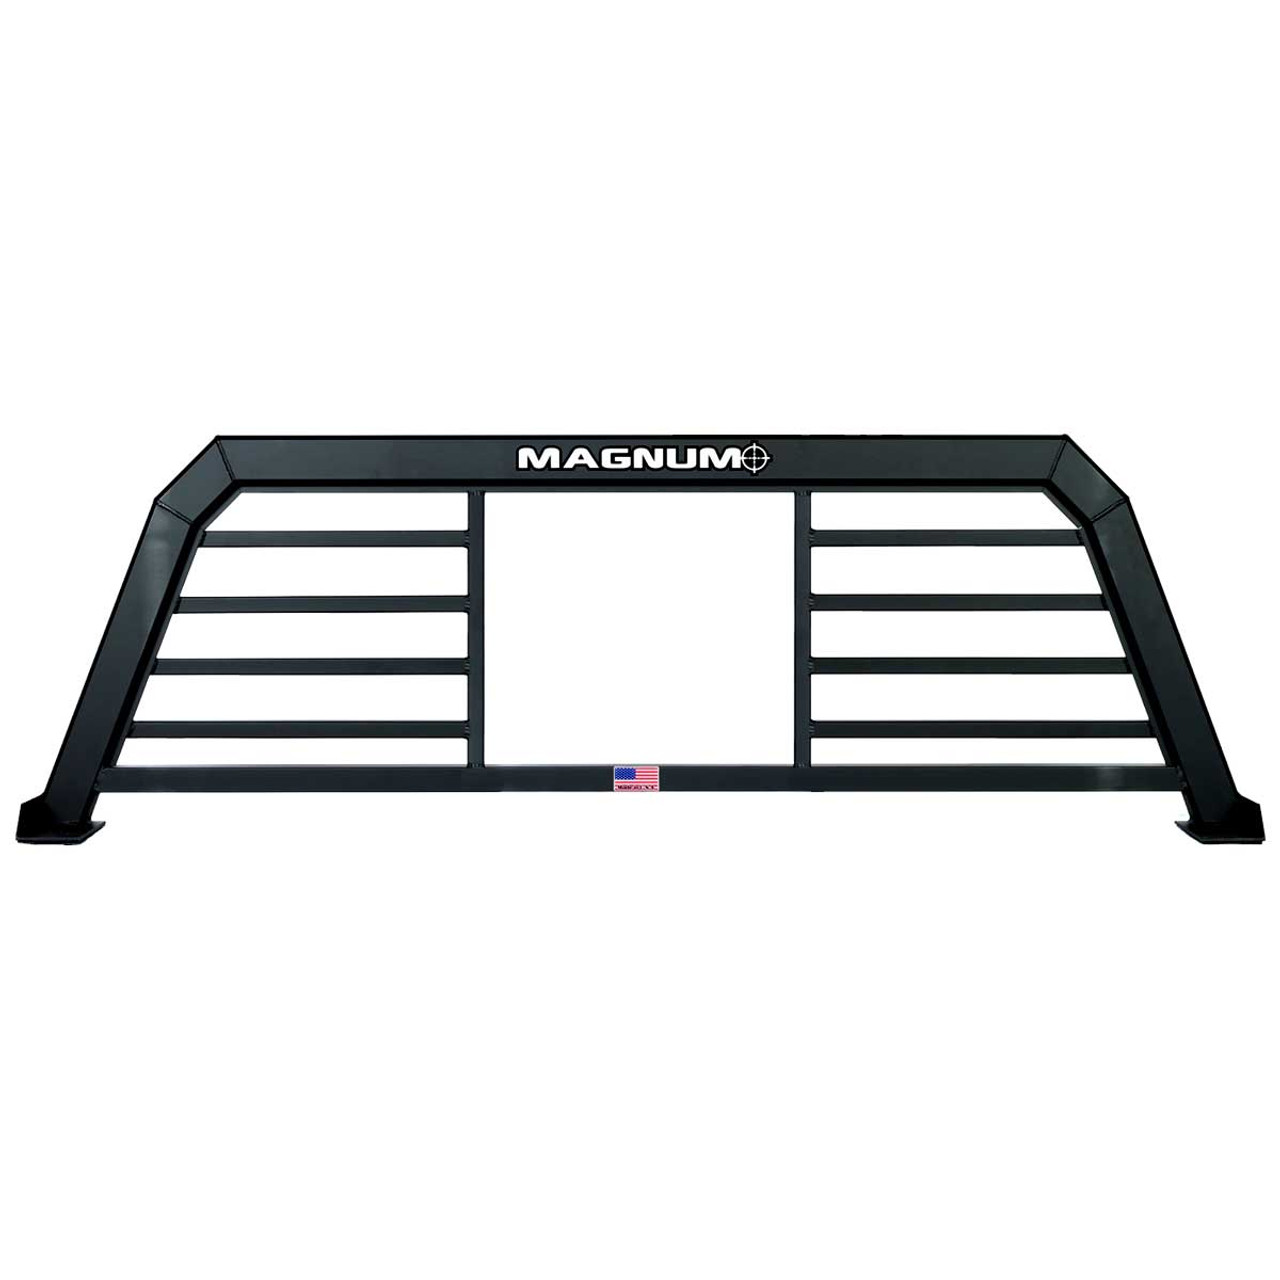 Truck Rack with Window Cut Out - Standard